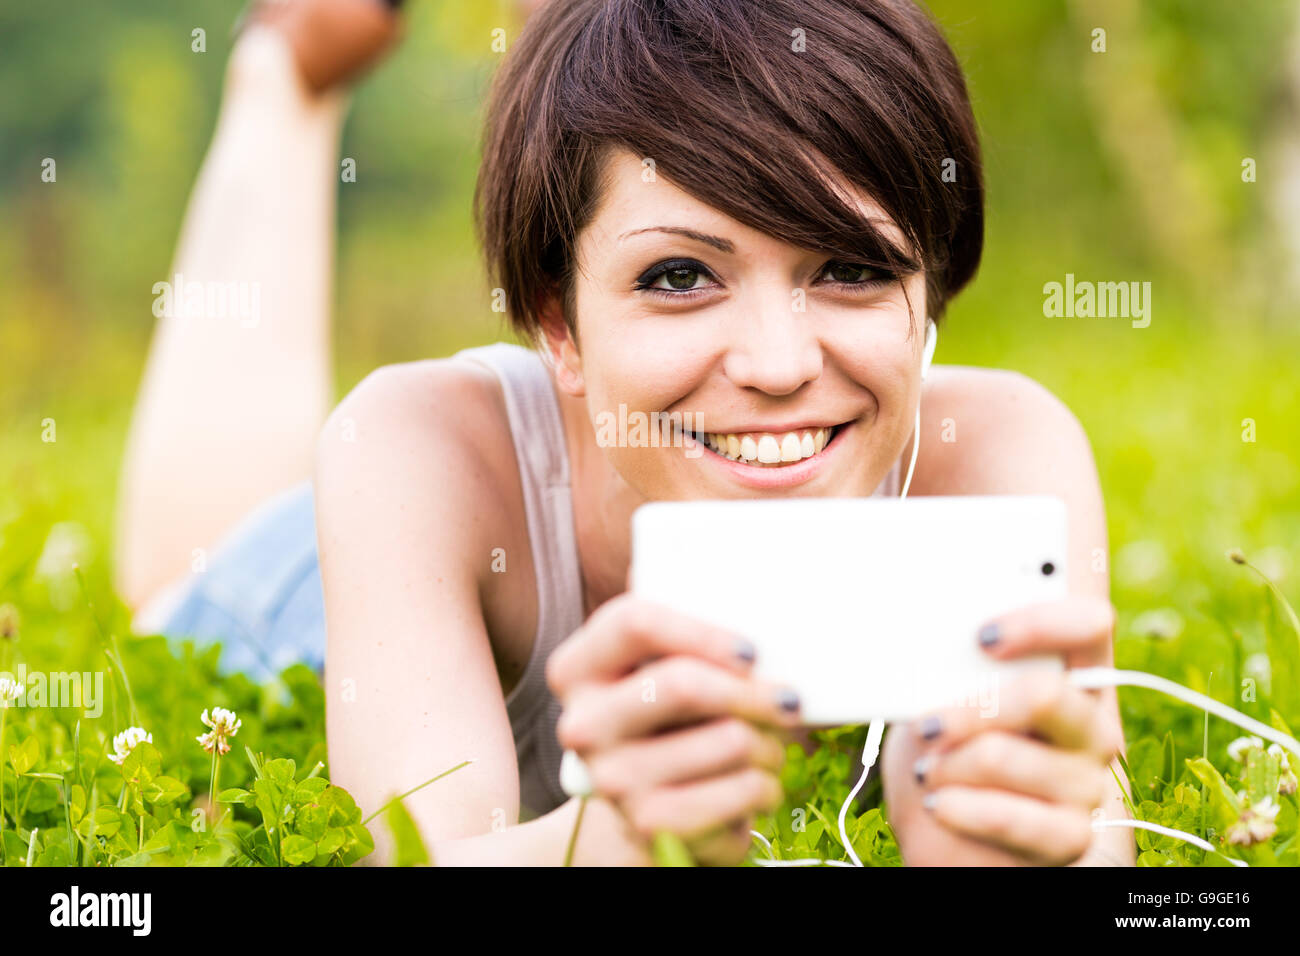 Smiling happy woman listening to music outdoors lying on her stomach on the grass holding her mobile phone, close - Stock Image